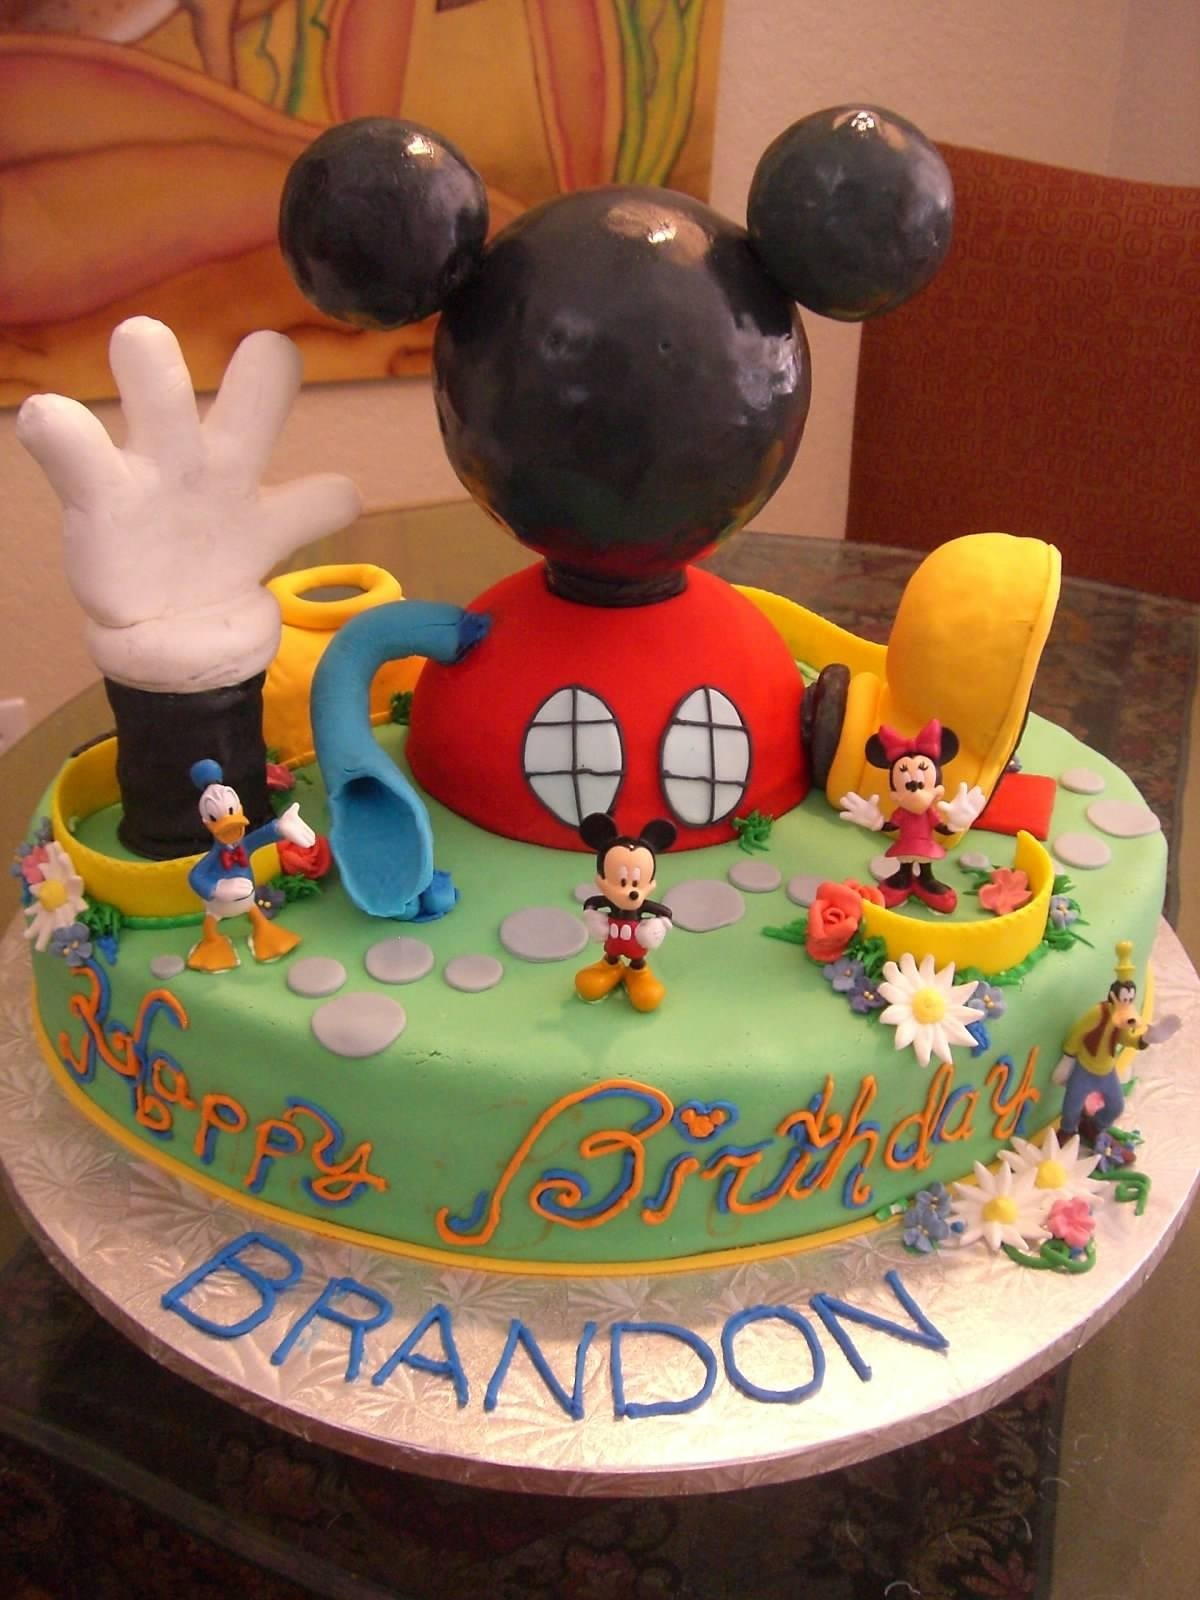 file:mickey mouse clubhouse birthday cake - wikimedia commons